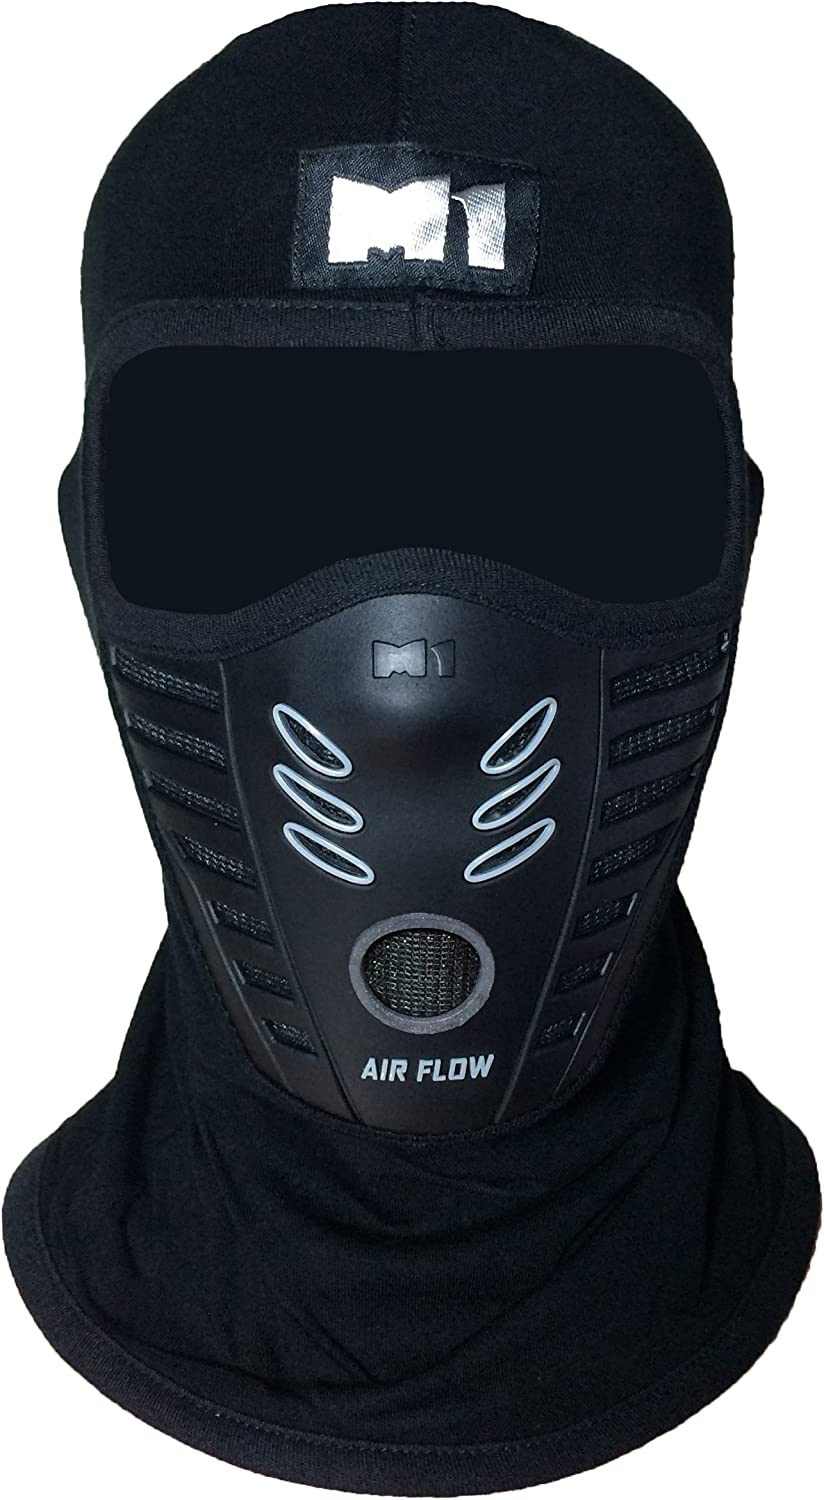 M1 Full Face Cover Balaclava Protection Filter Rubber Ski Dust Mask (BALA-FILT-RUBB-Blck) Black